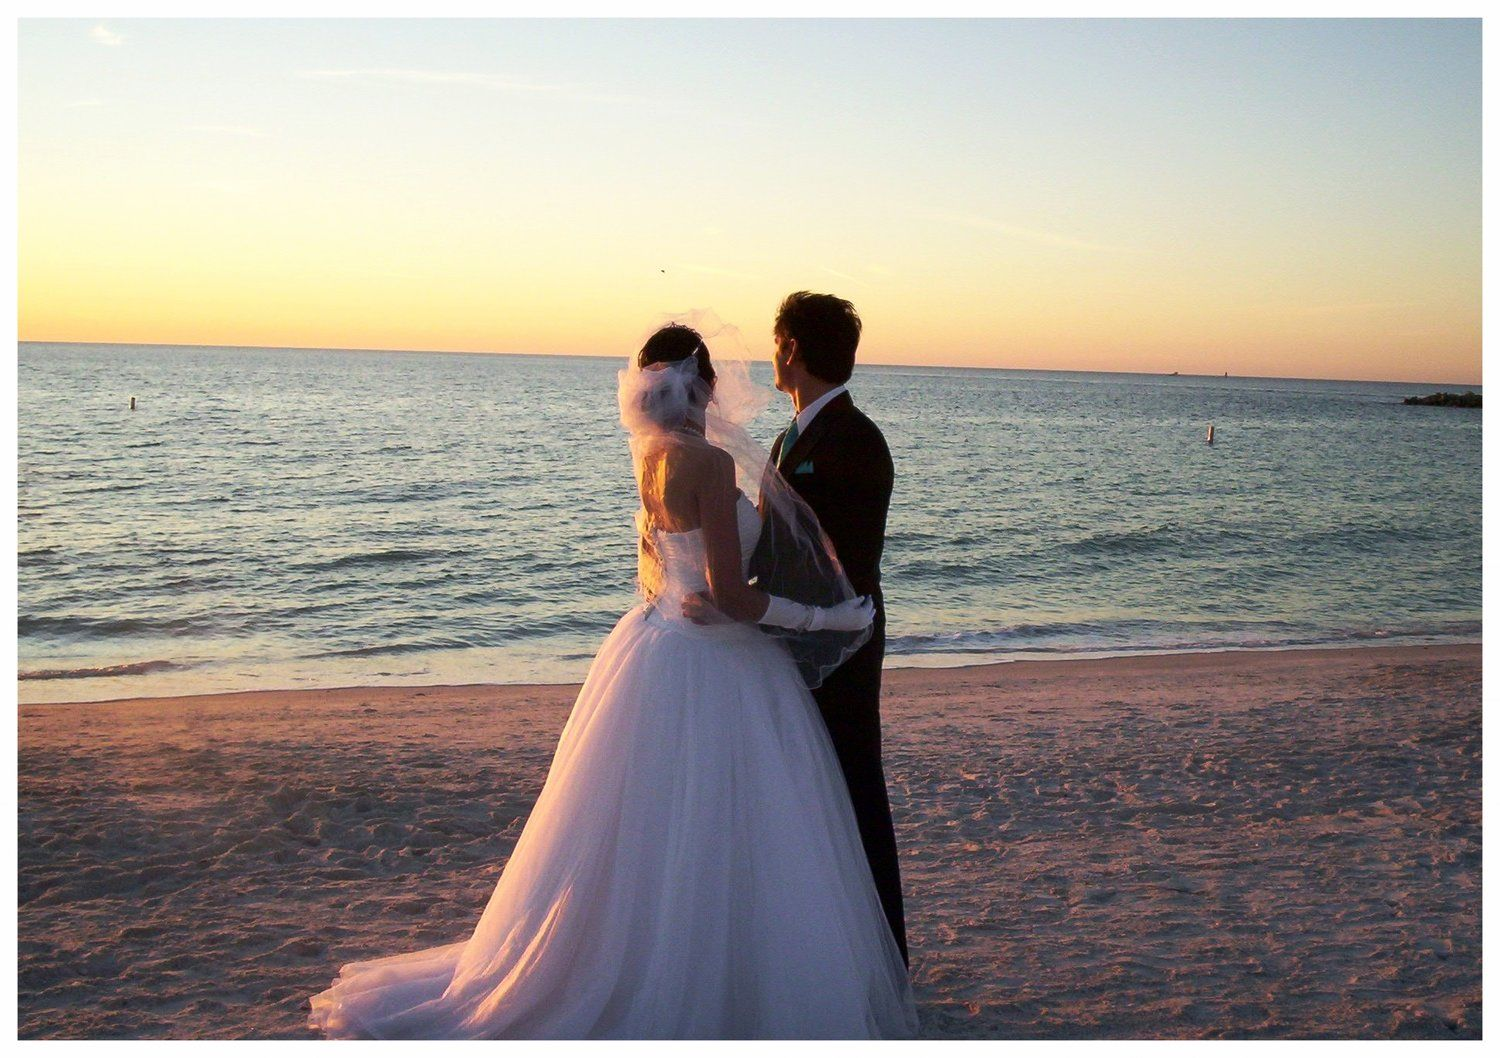 50+ Sunset beach wedding pictures ideas in 2021